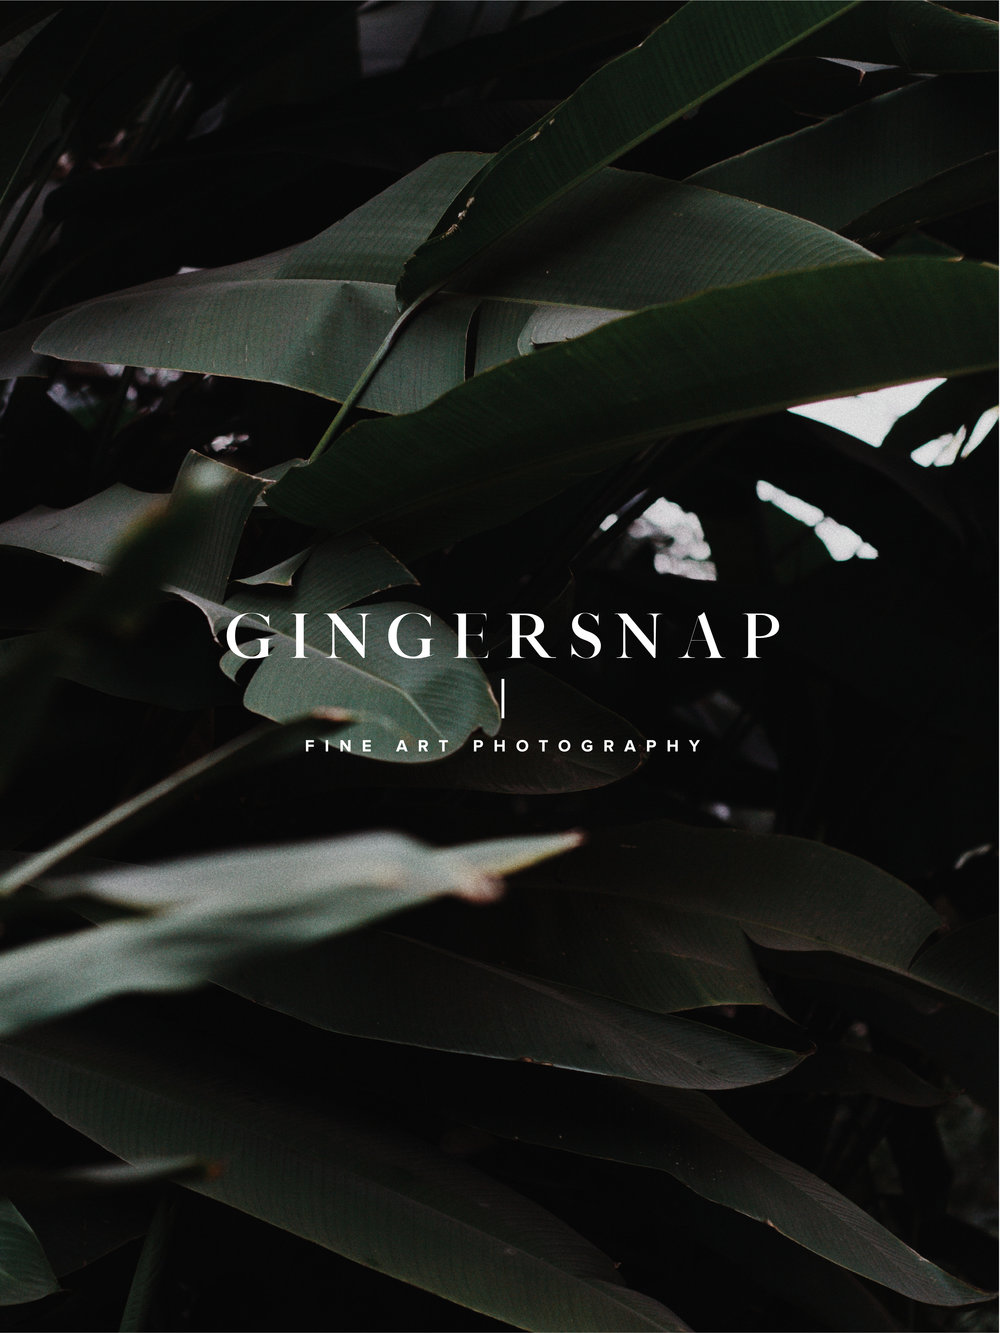 gingersnap-photography-swell-yyc-calgary-graphic-design